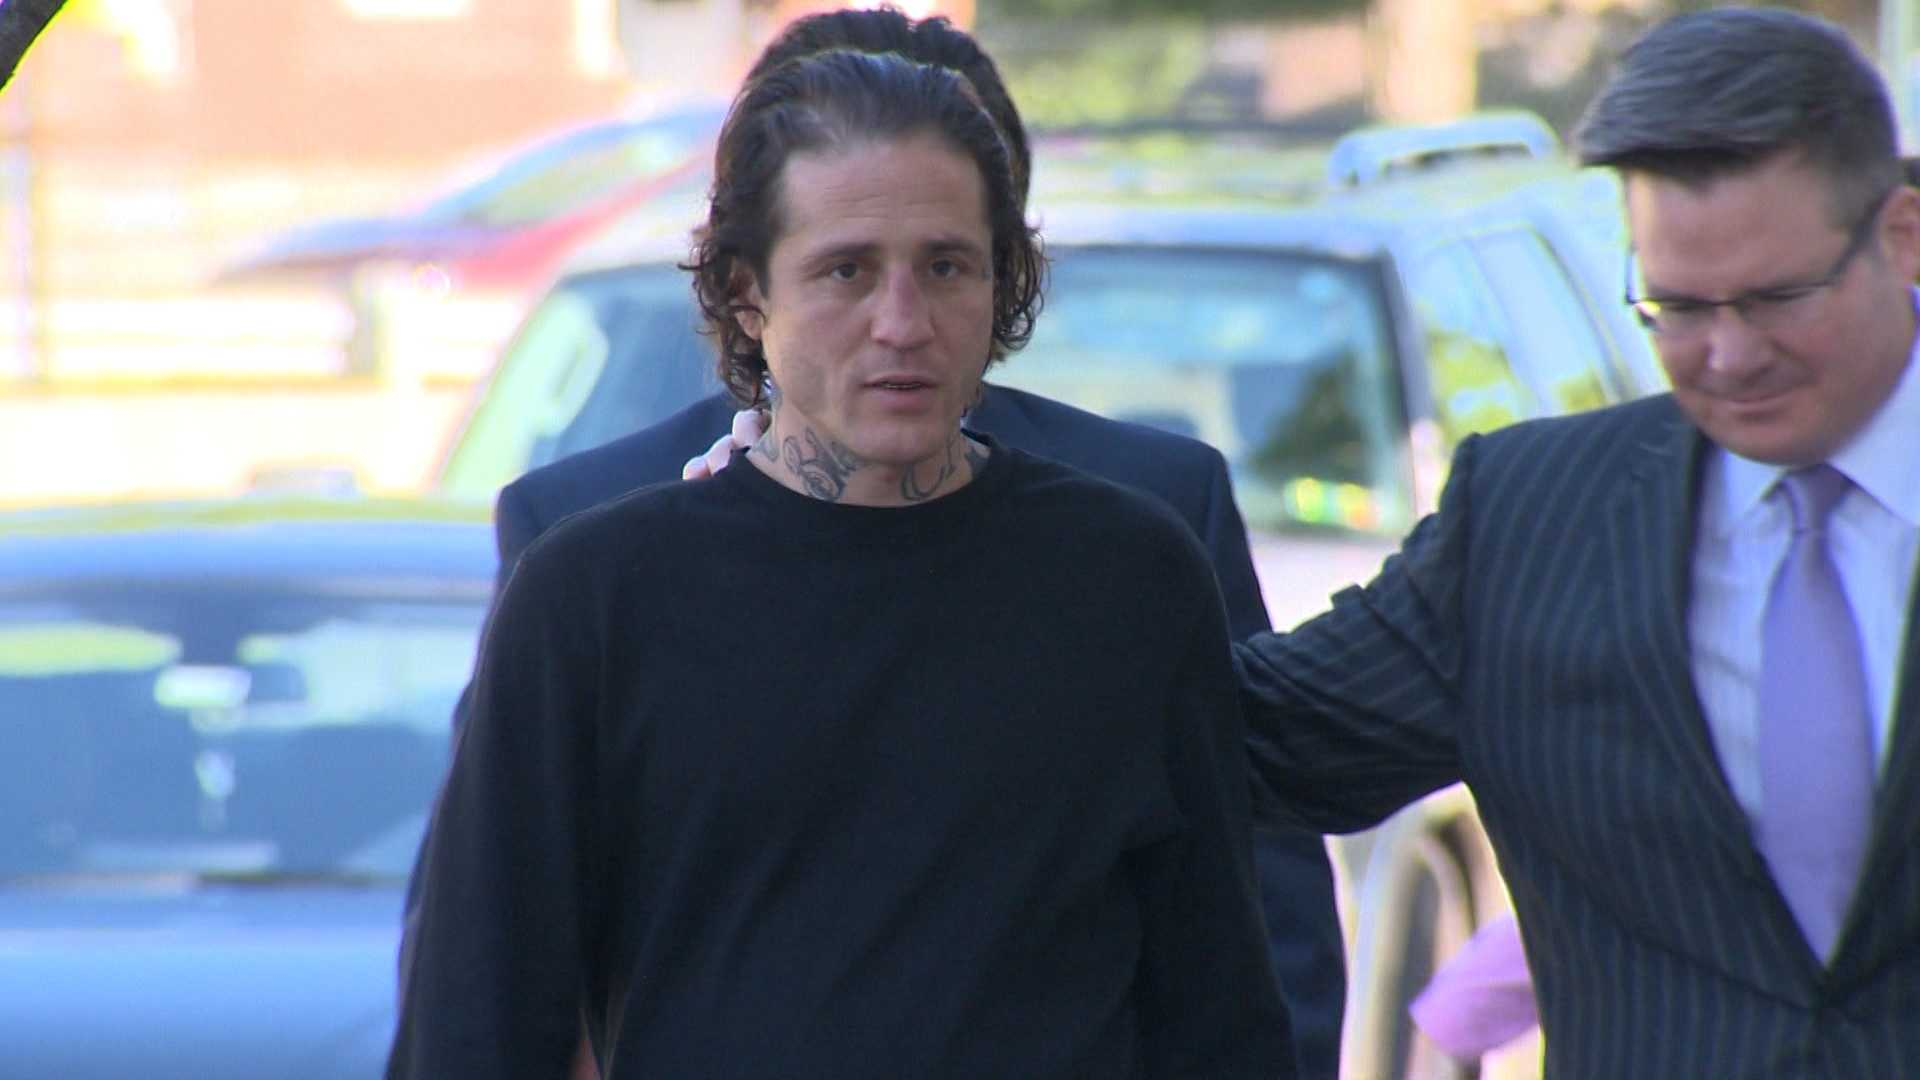 Paul Spadafora arrives for a court hearing with his lawyer.